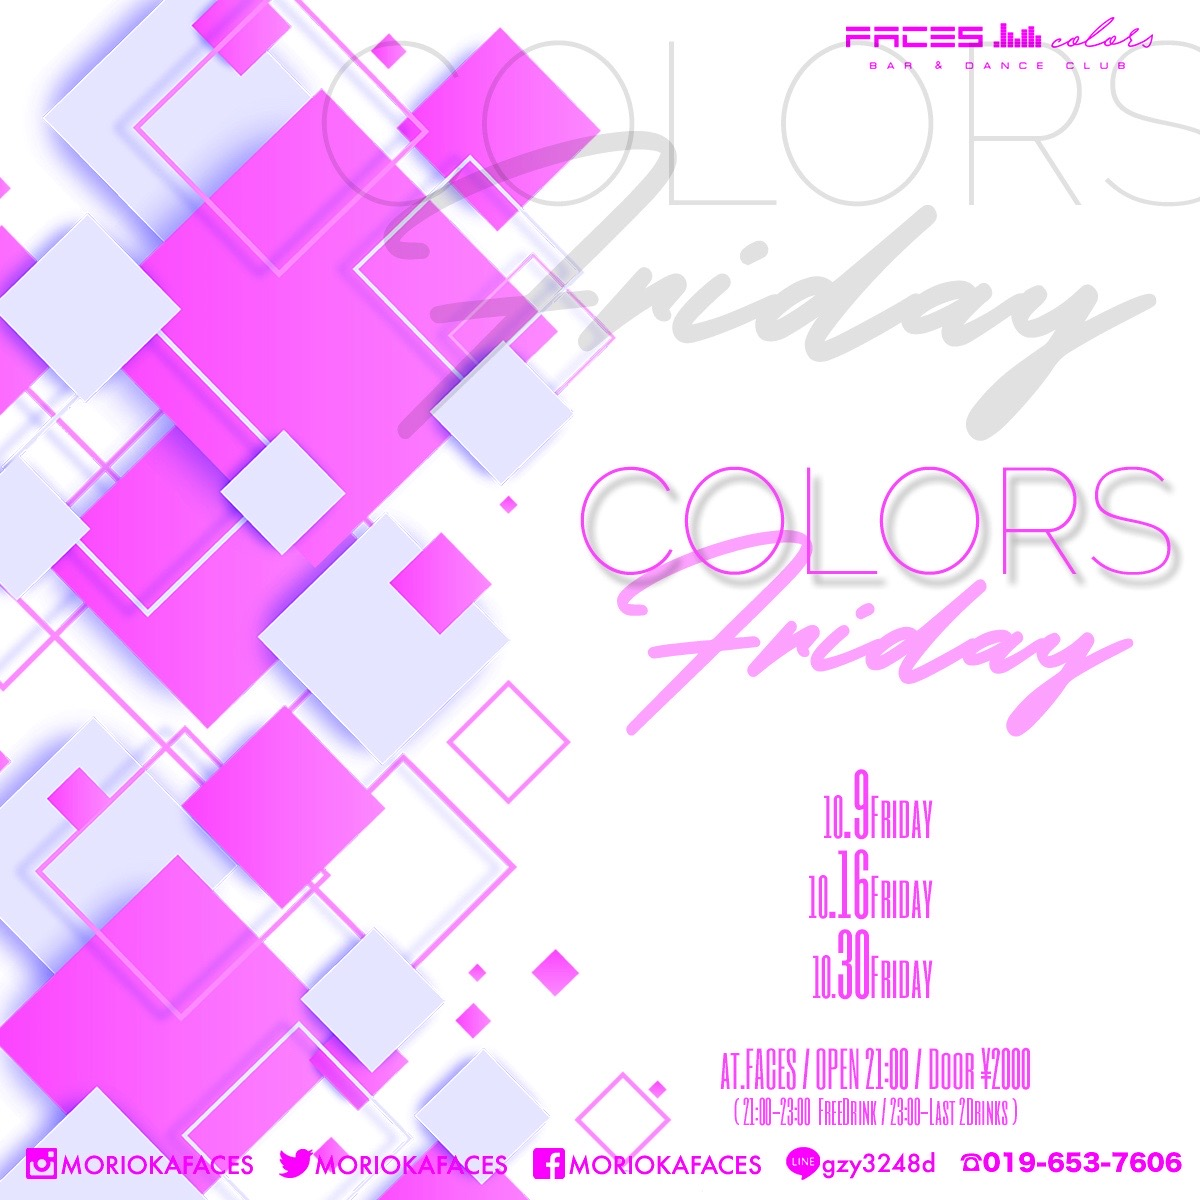 10.9(FRI) COLORS FRIDAY